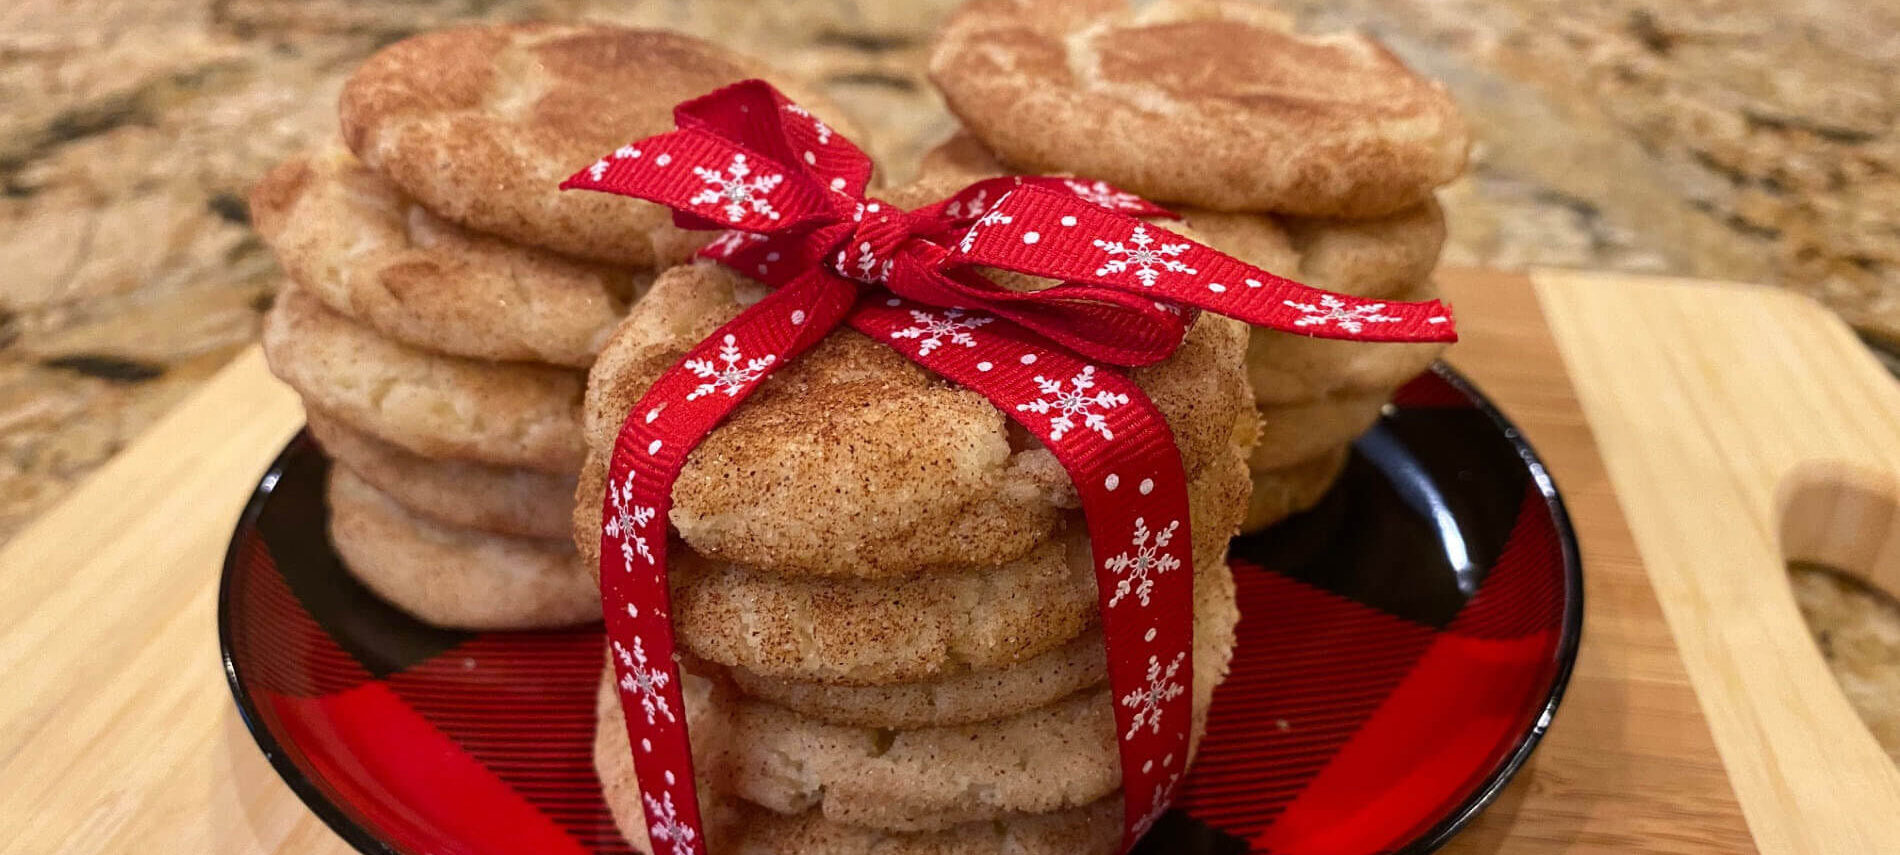 Golden round cookies coated with cinnamon and sugar, stacked and wrapped witjh a red and white snowflake ribbon